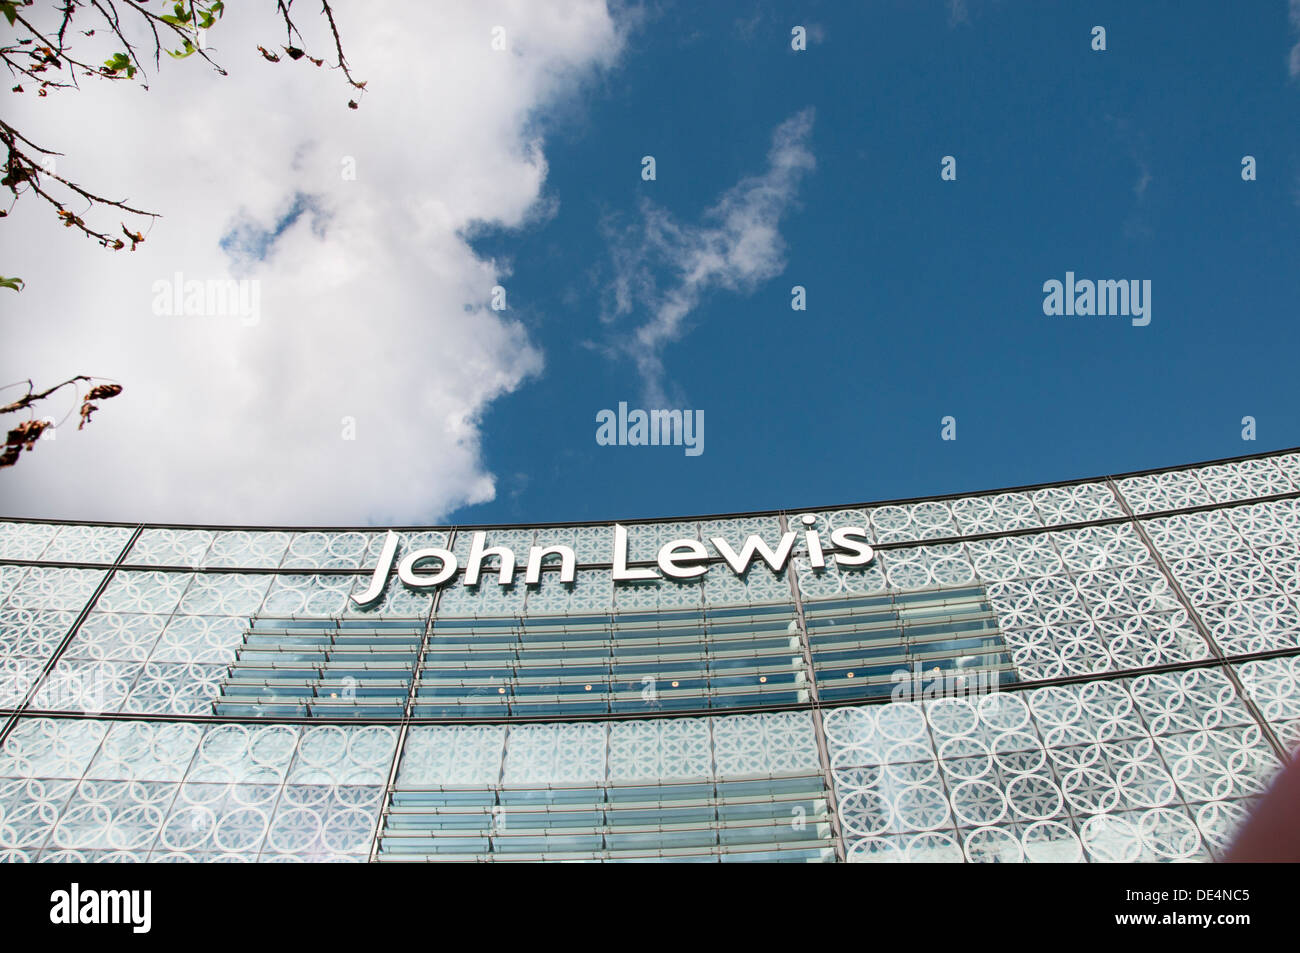 Stratford. Westfield shopping centre. John Lewis facade. Stock Photo